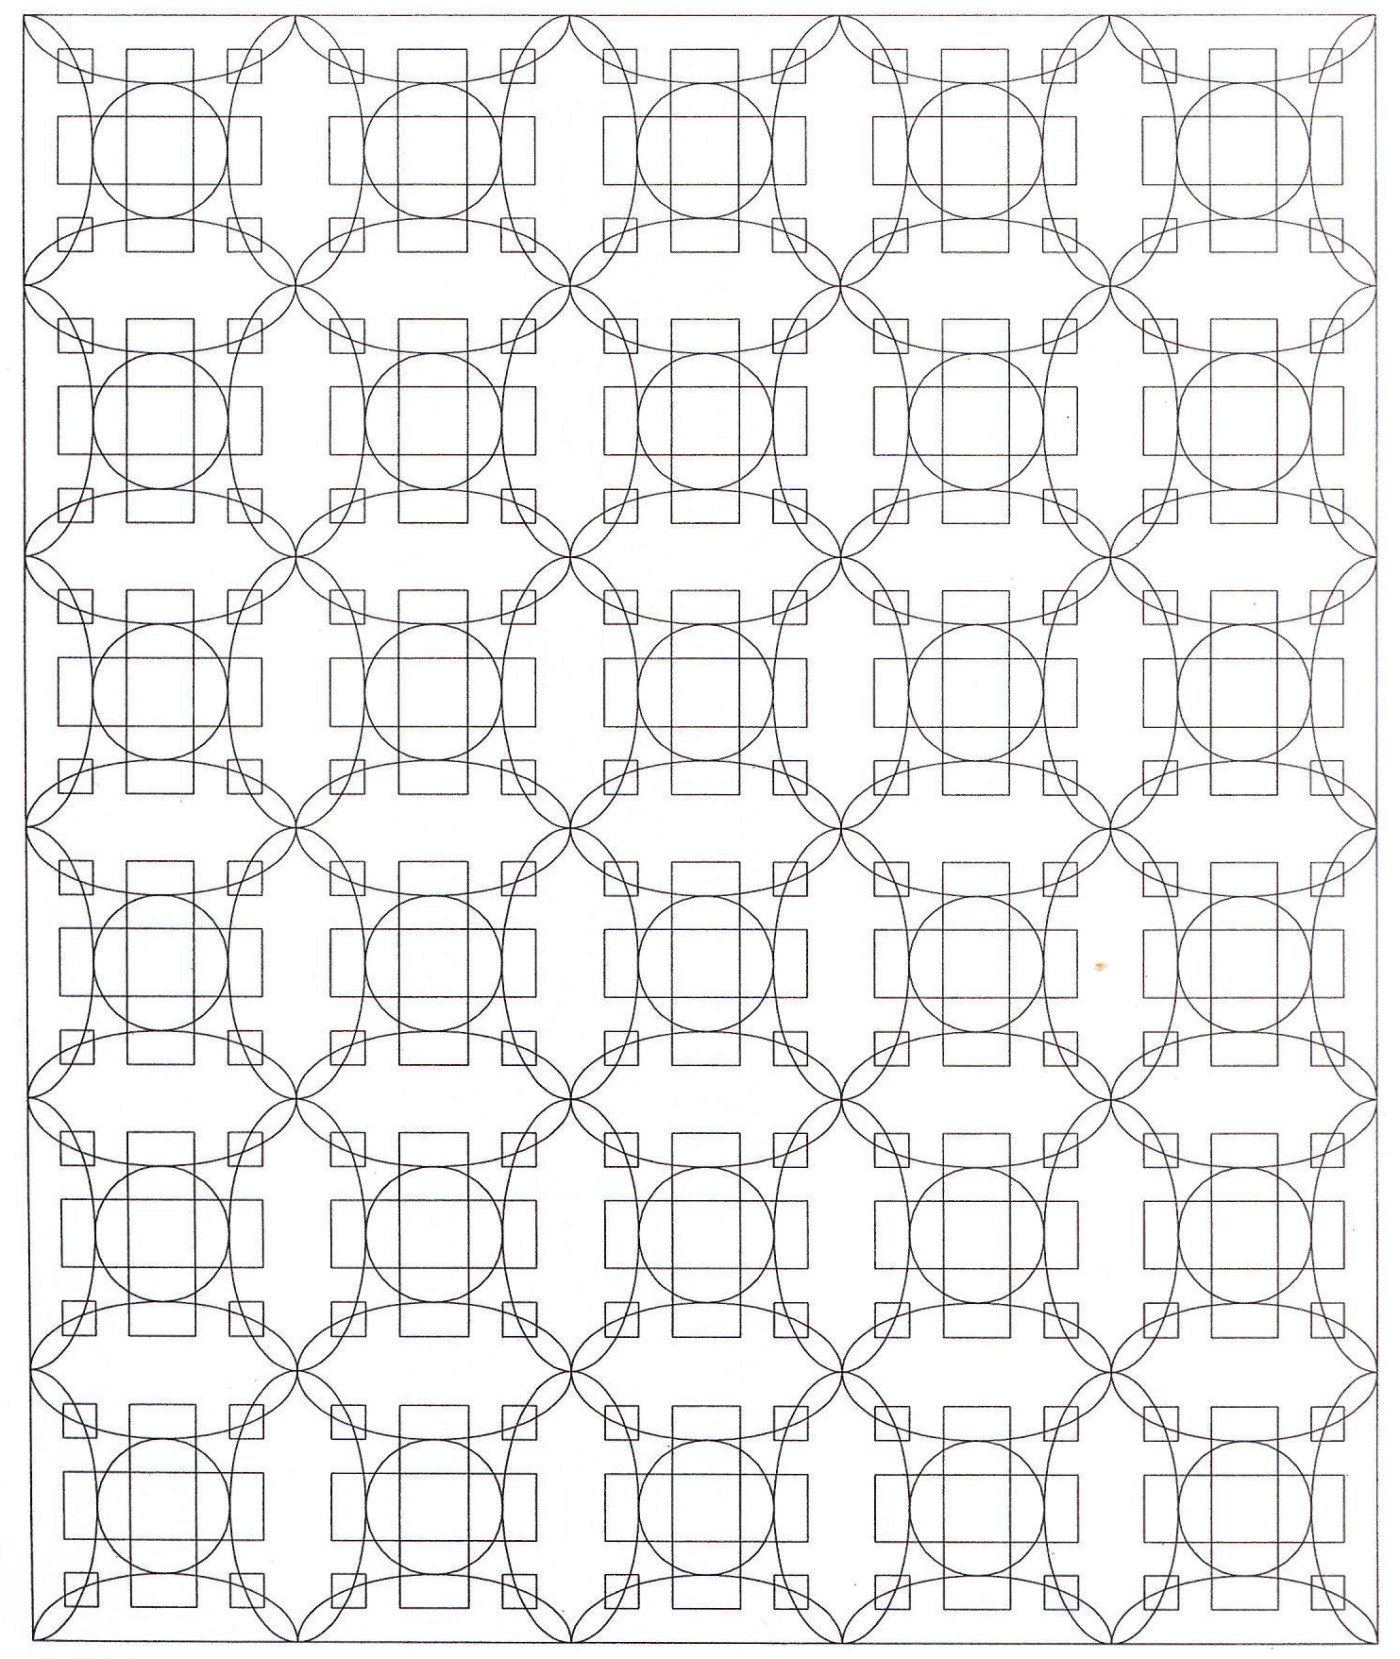 cool patterns to color grab your markers colored pencils etc - Cool Patterns To Colour In